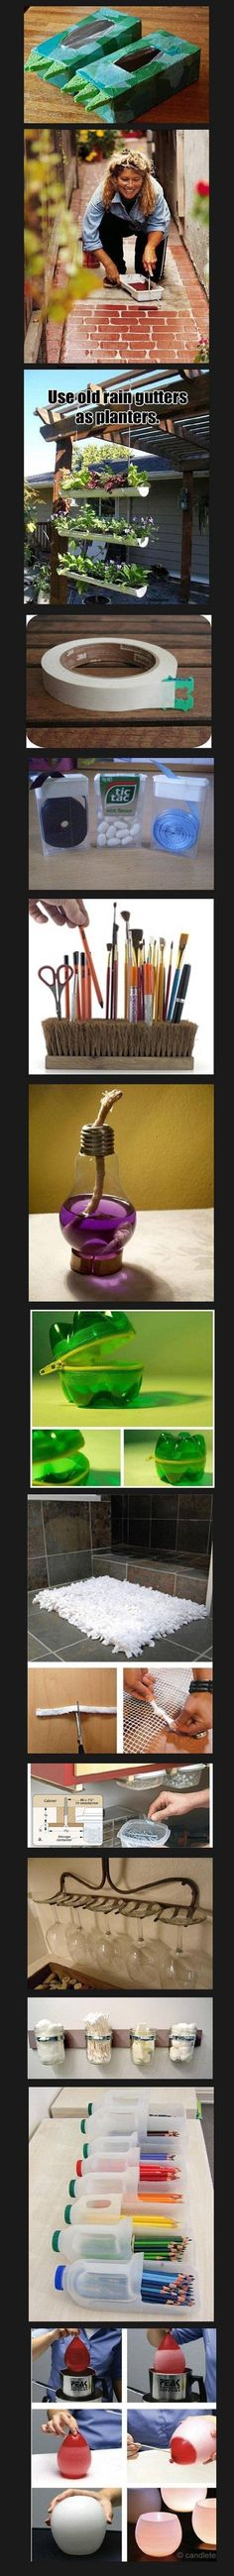 Some creative ideas for re-use of common products for practical purposes!